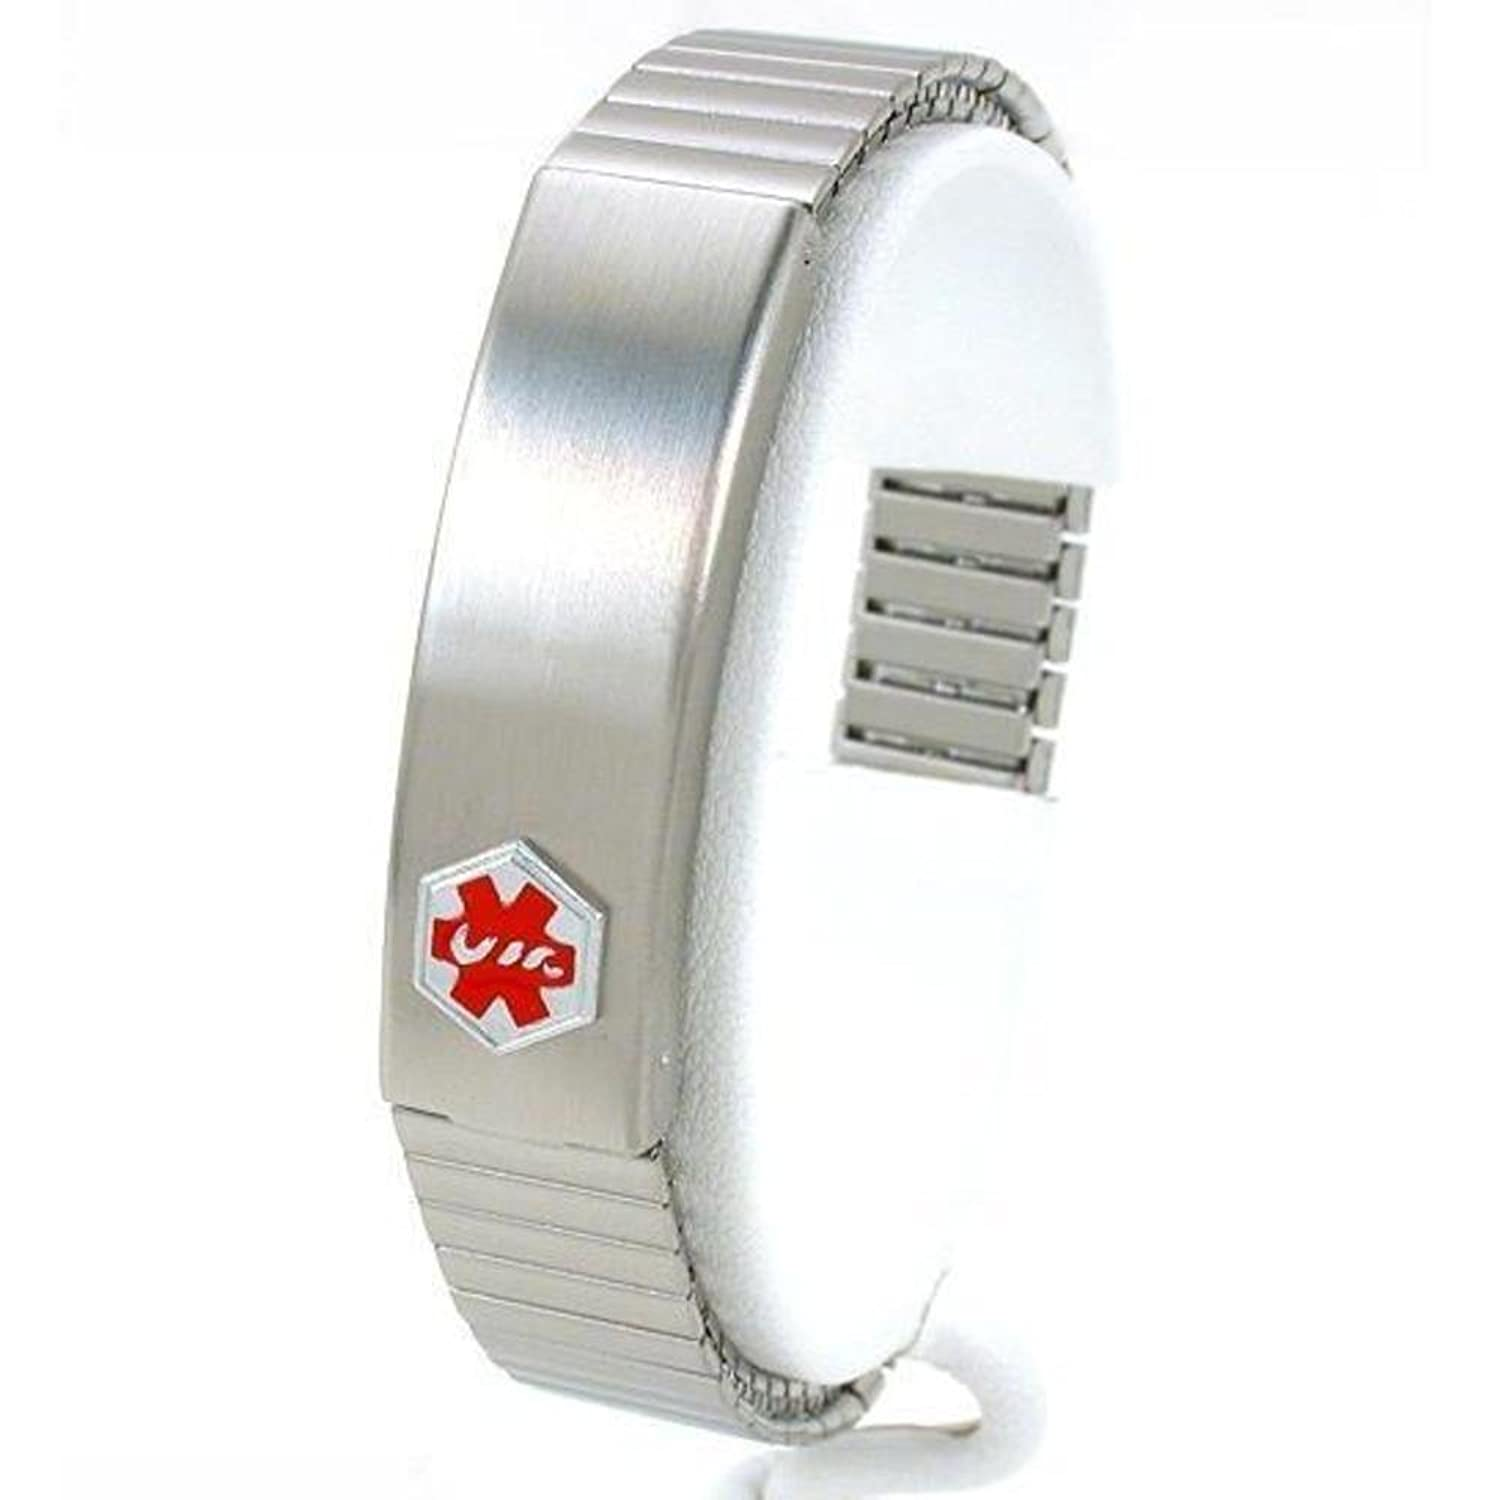 american ideas for classic canada australia silver bracelets medical id information super sterling diabetes uk bracelet usb